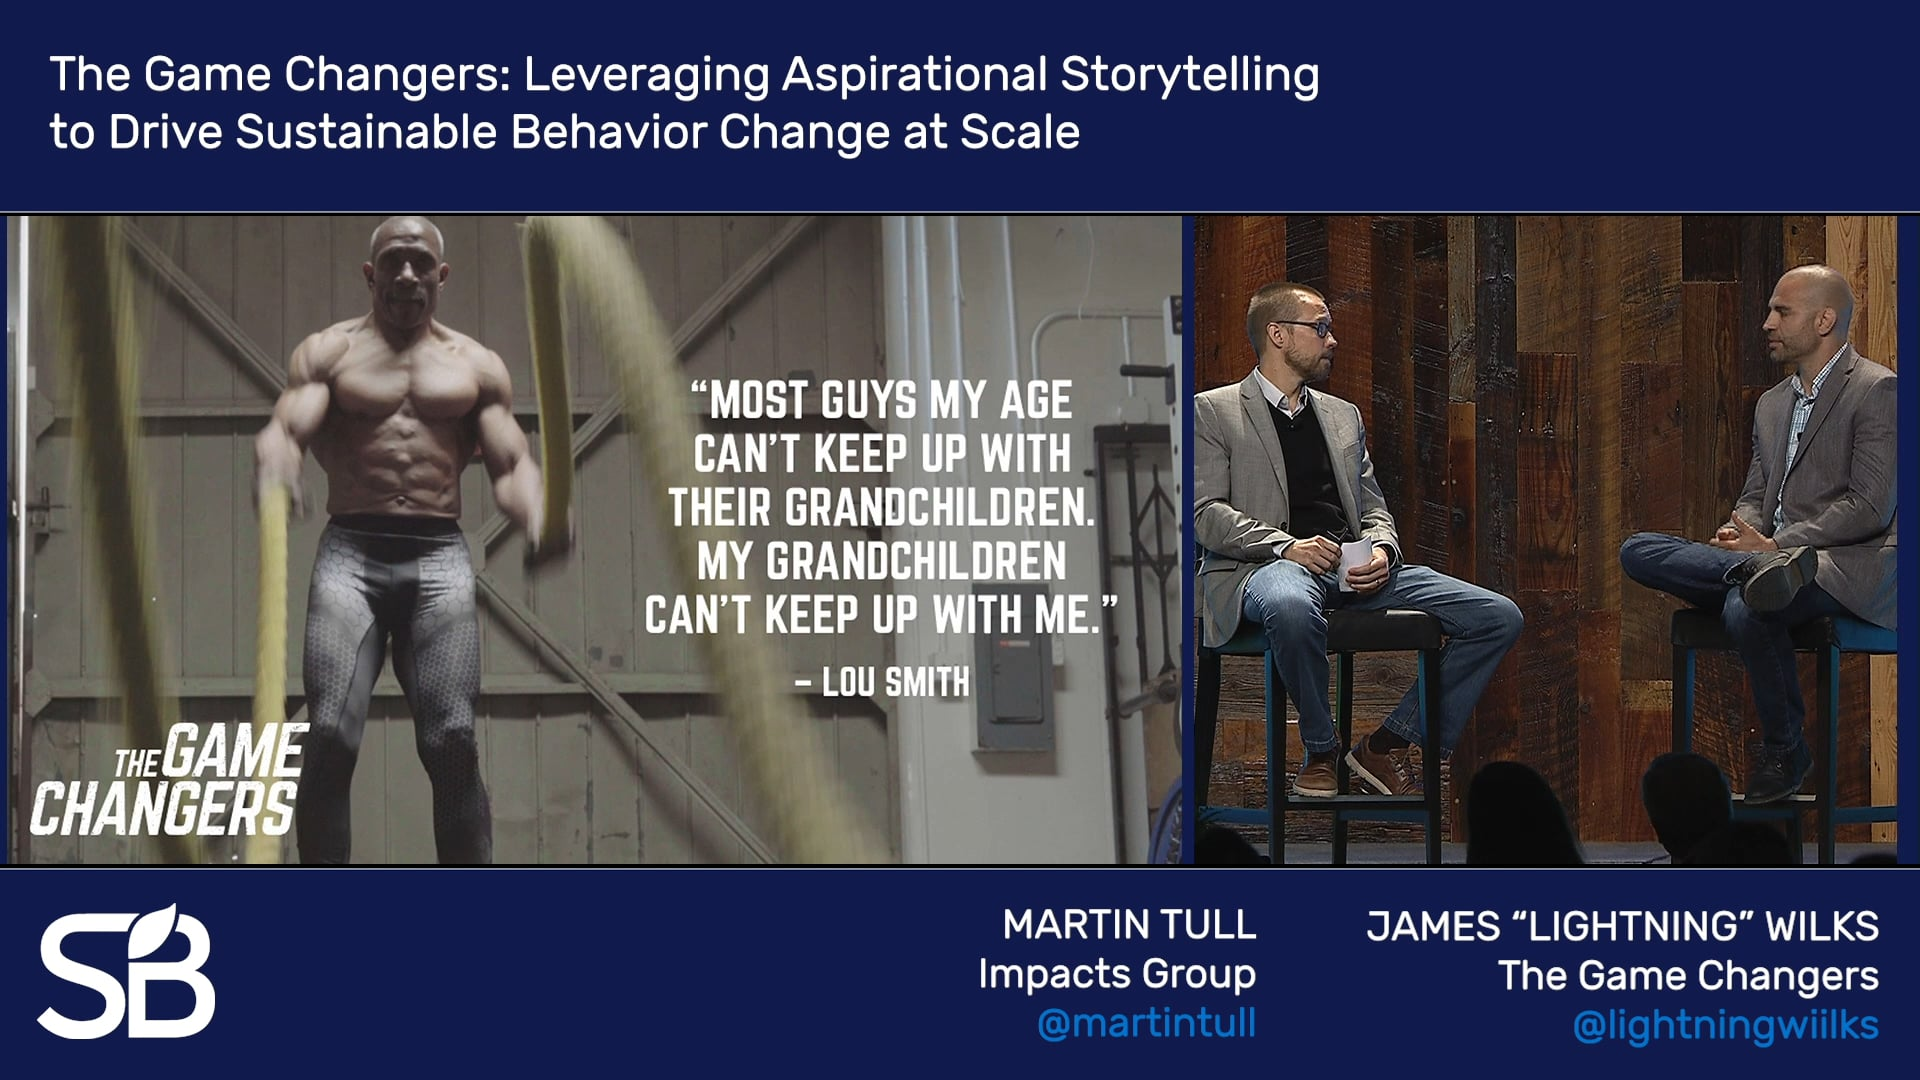 SB'18 Vancouver Keynote / The Game Changers: Leveraging Aspirational Storytelling to Drive Sustainable Behavior Change at Scale